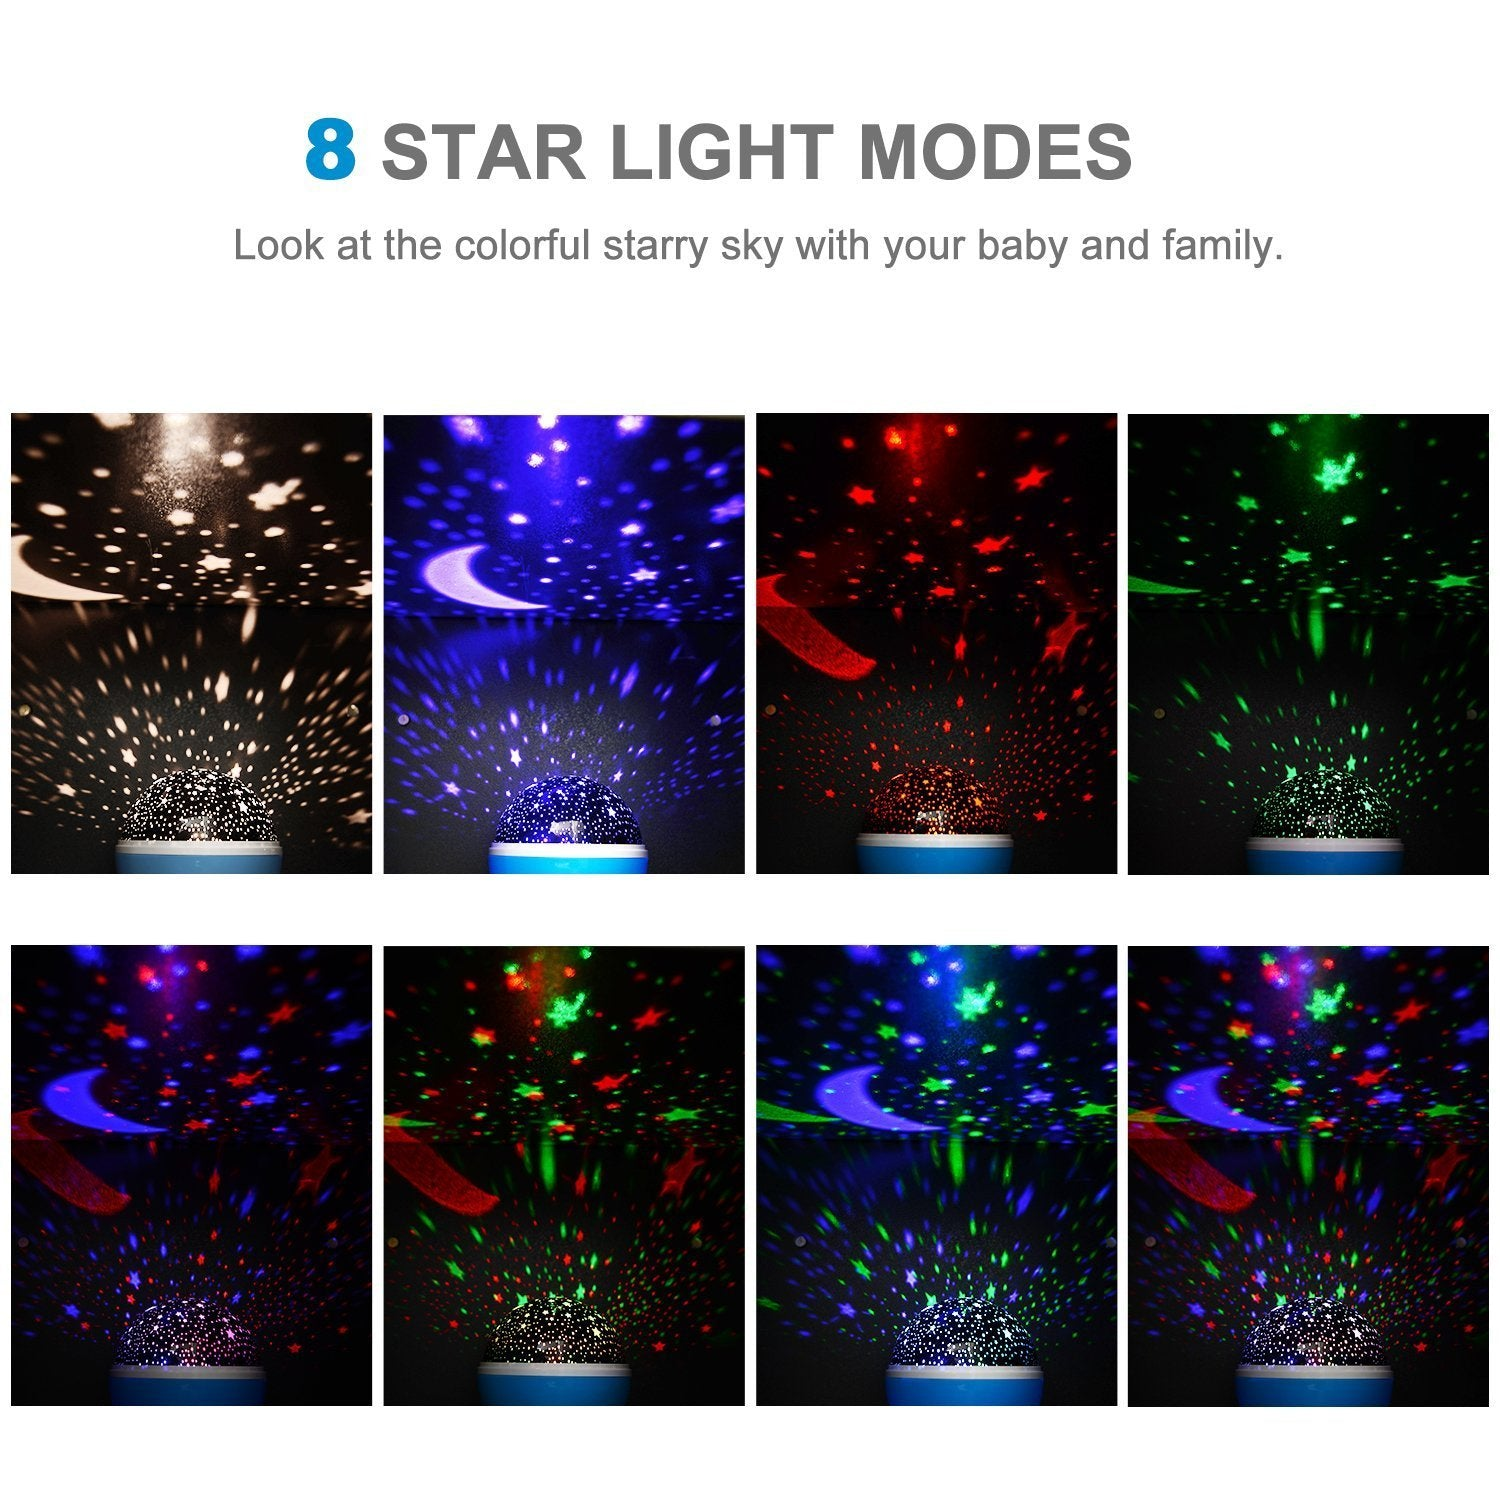 Boomile Baby Night Light, Star Light Rotating Projector, 4 LED Bulbs 8 Modes, Color Changing With USB Cable, Unique Gifts for Kids